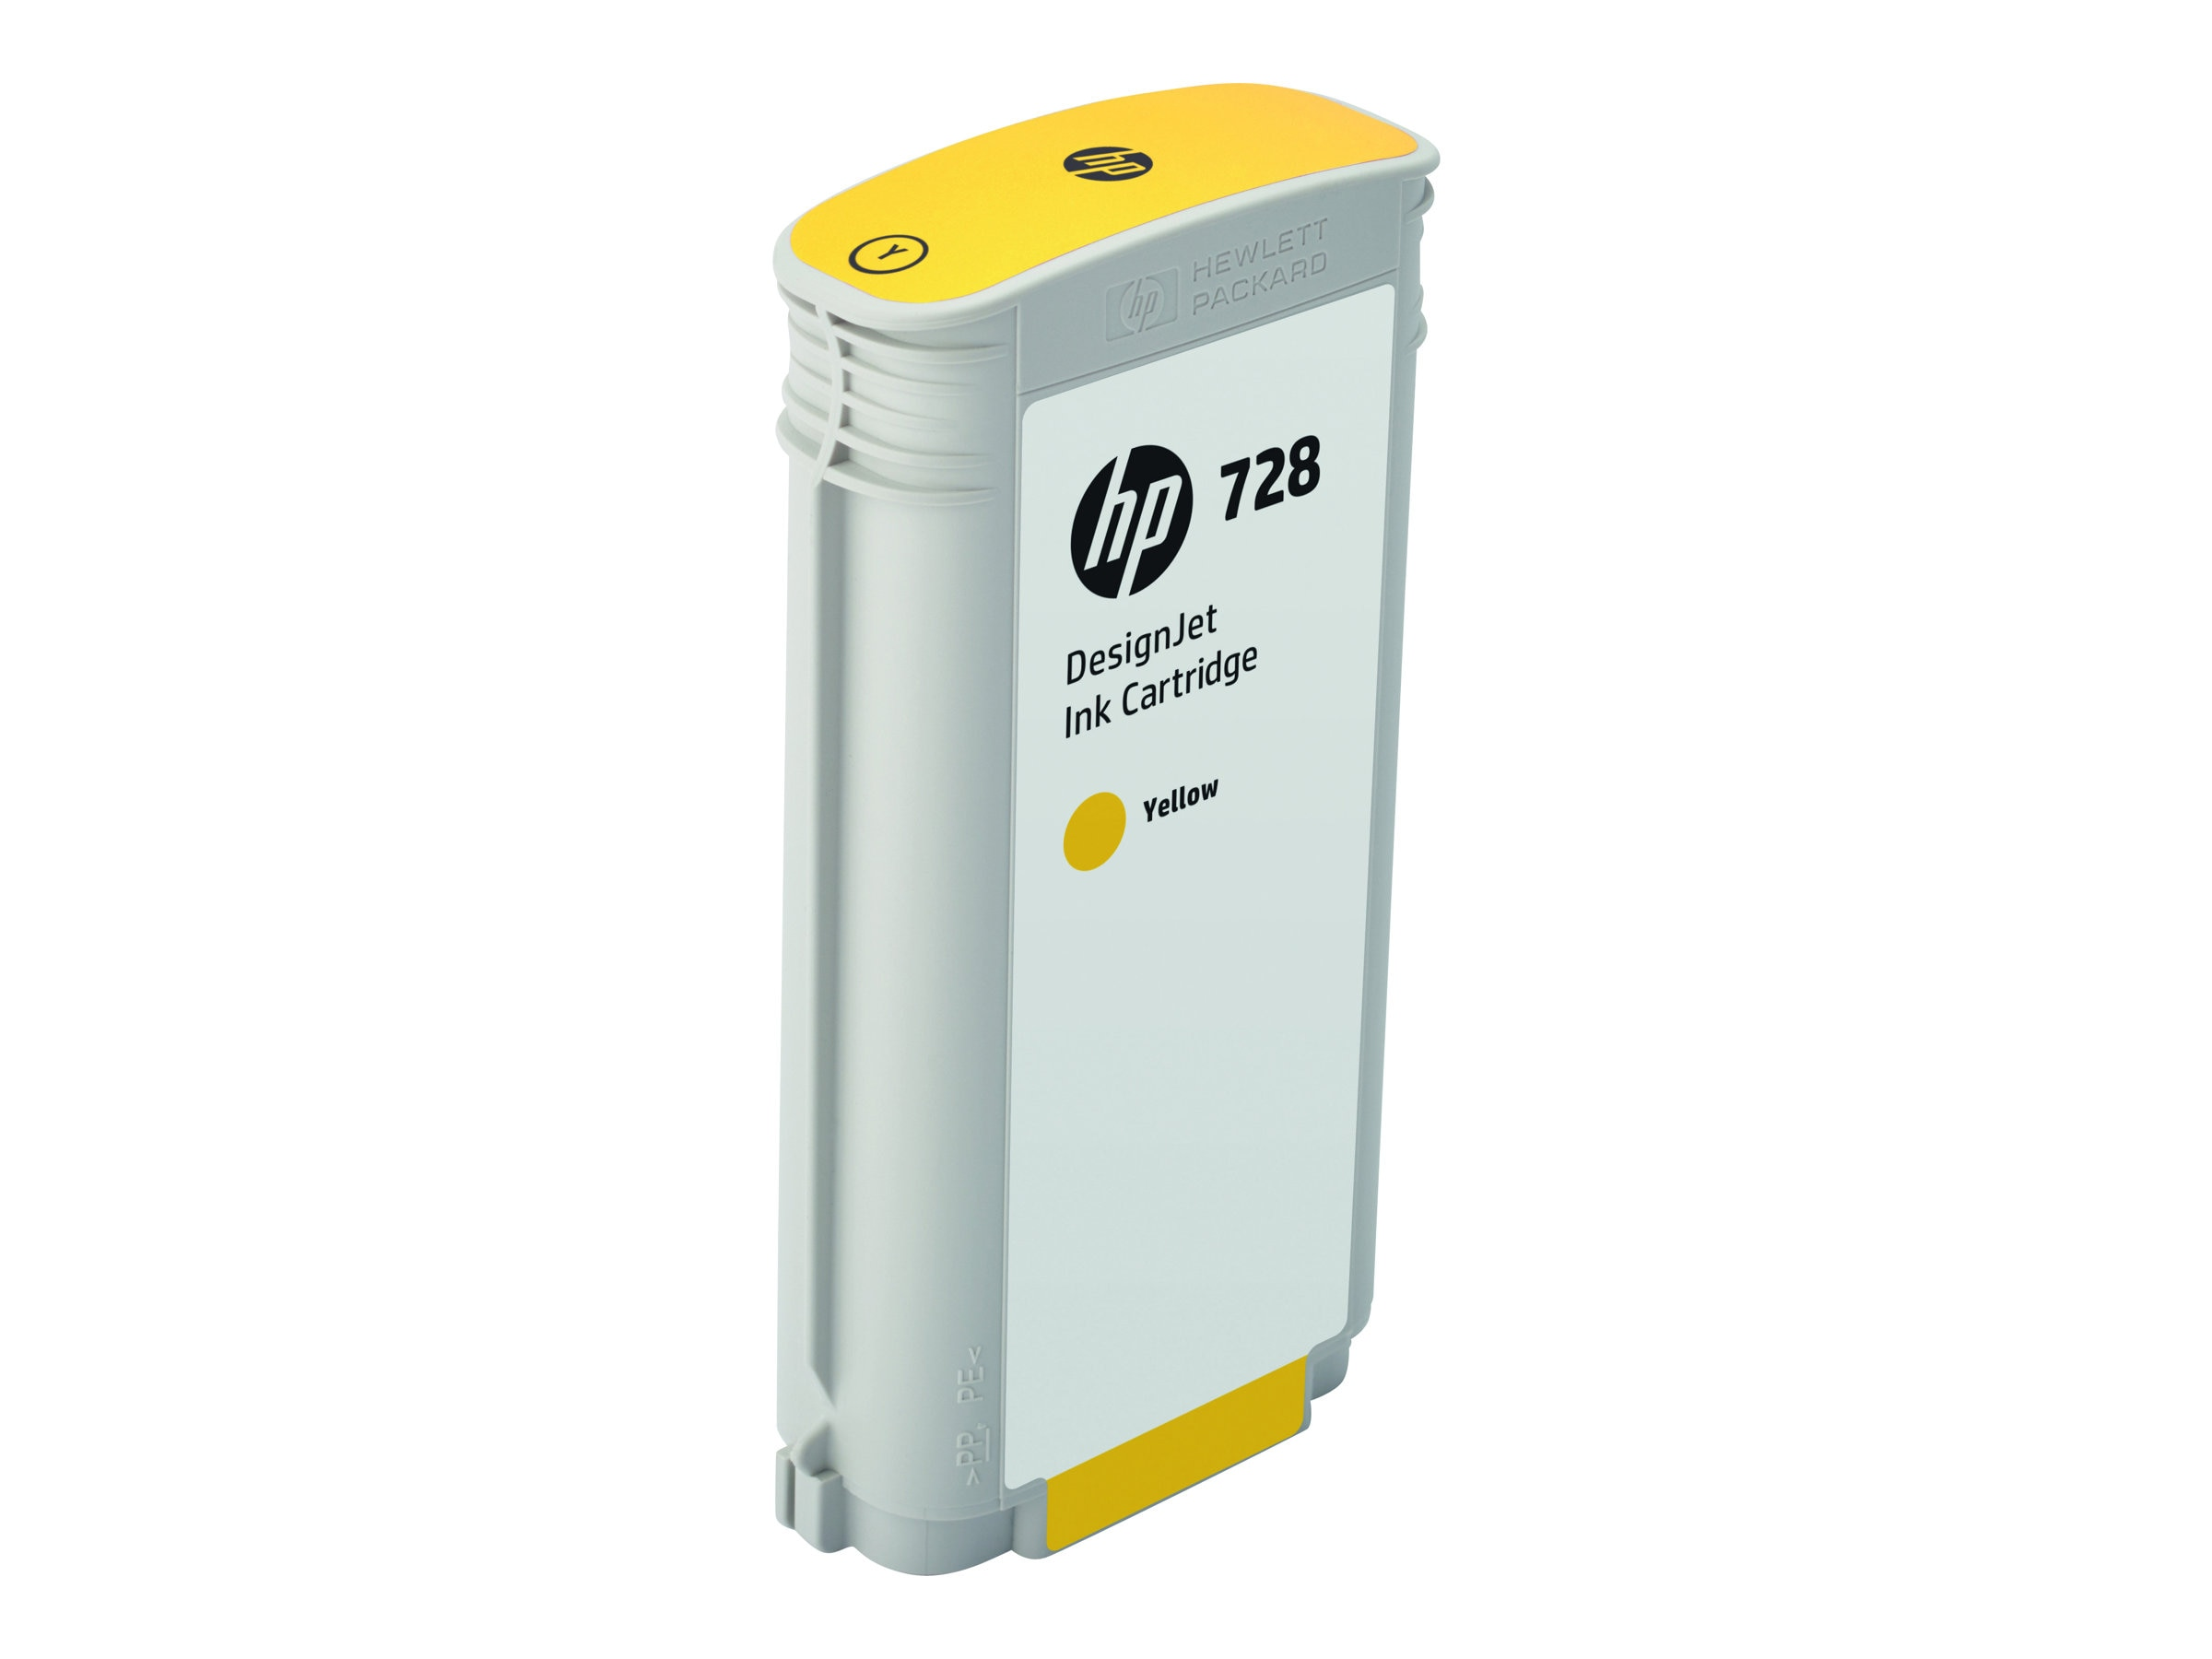 HP 728 (F9J65A) 130ml Yellow Designjet Ink Cartridge for HP DesignJet T730 & T830 Series